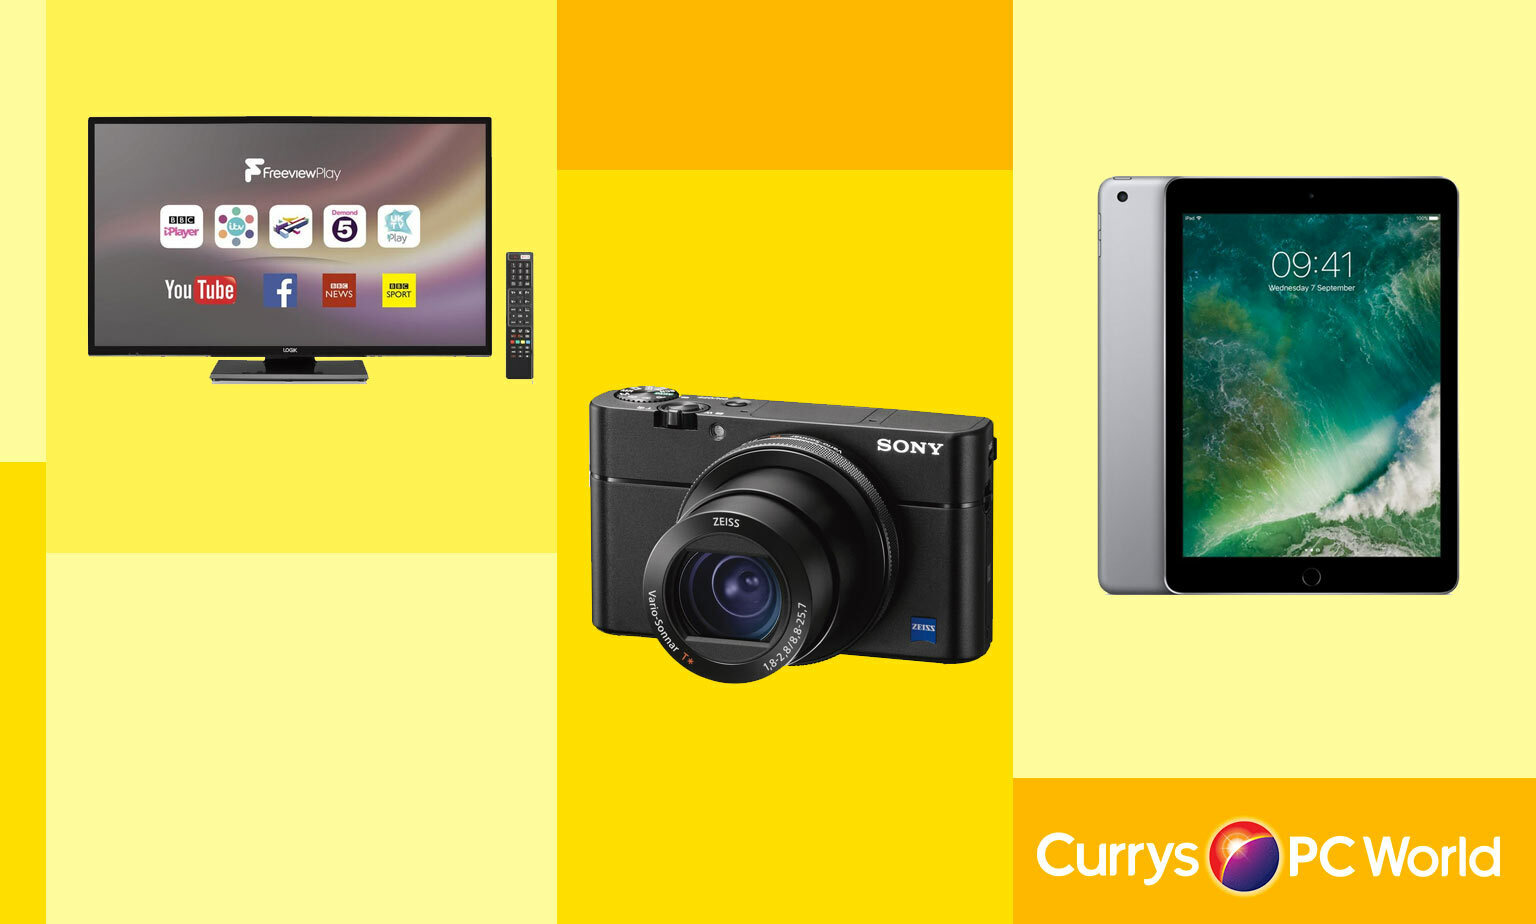 Currys' Clearance - Save up to 30%